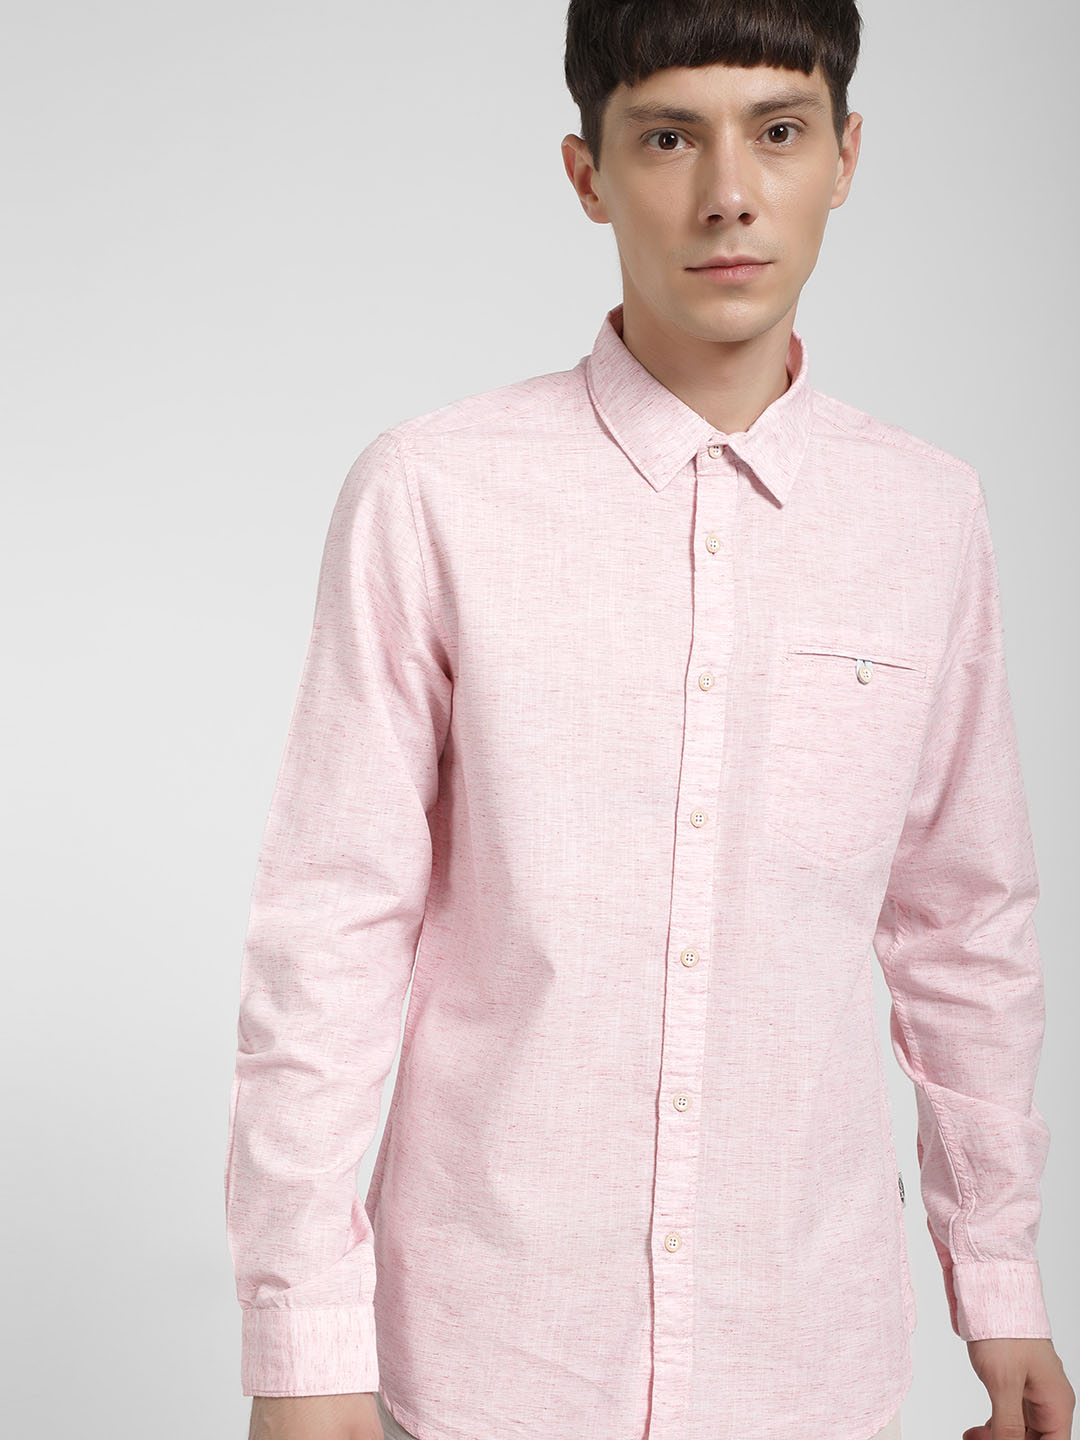 Lee Cooper Pink Woven Casual Shirt 1